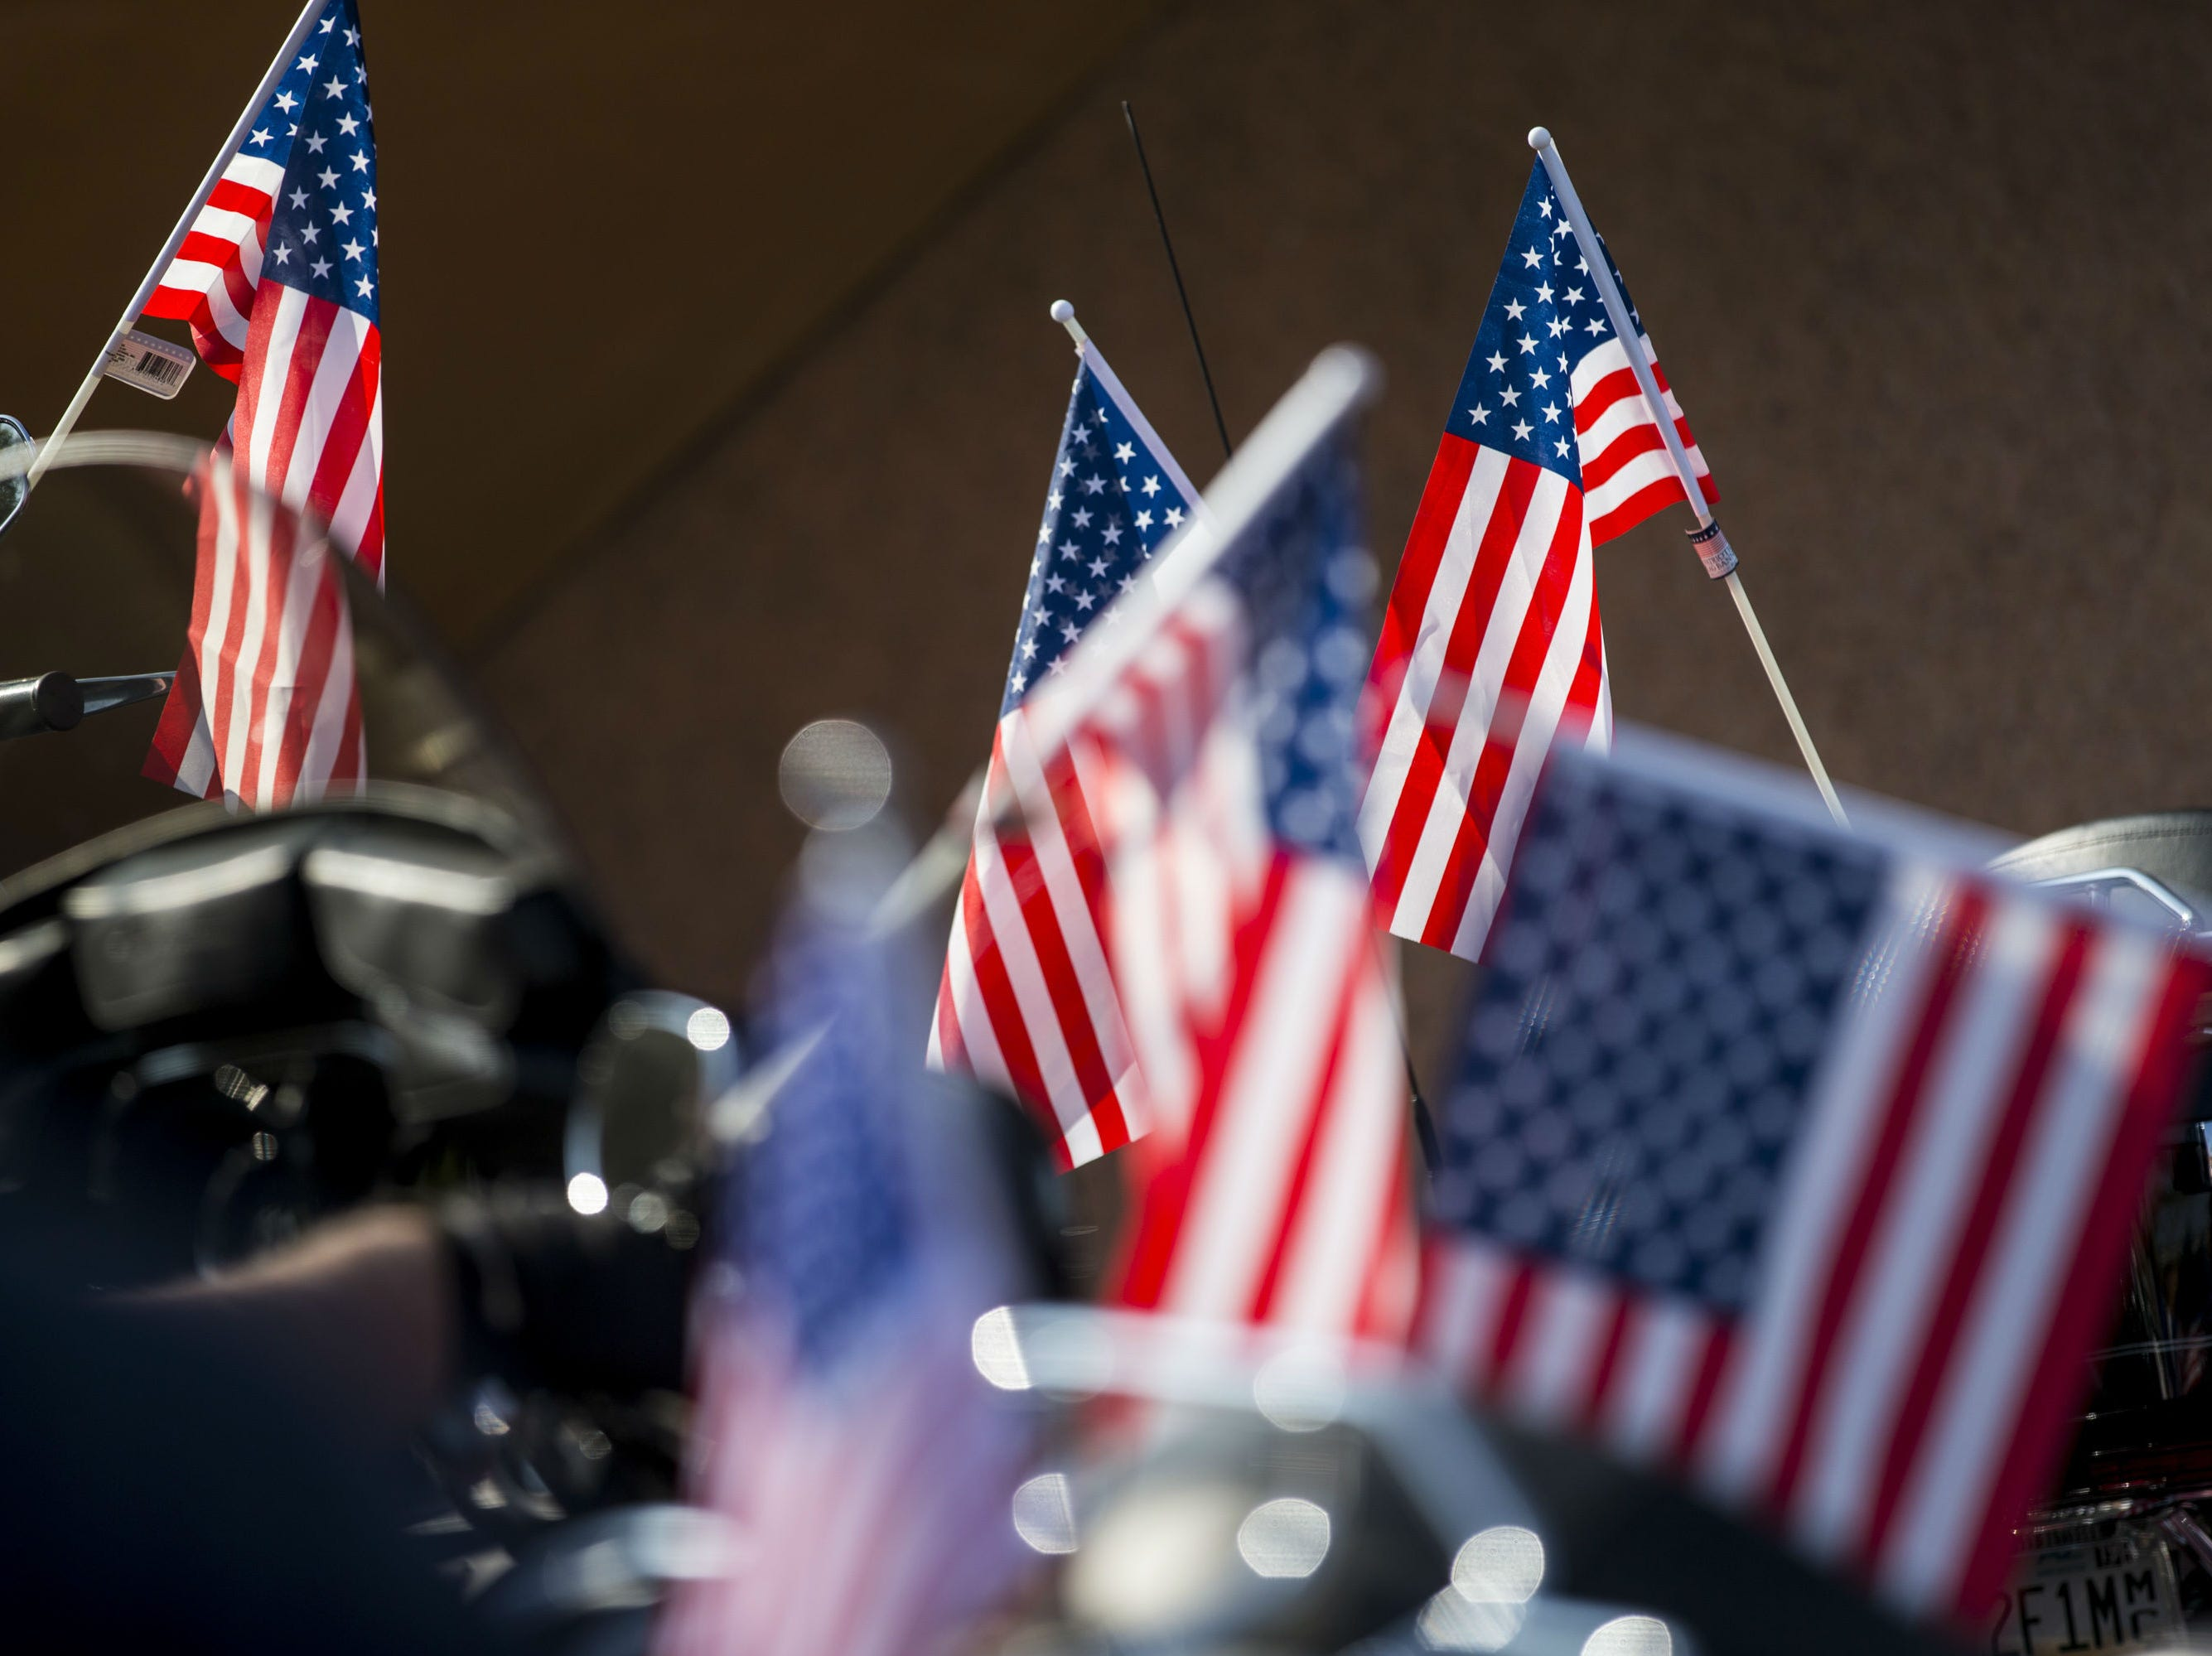 American flags are pictured on motorcycles before the Veterans Day Parade on Nov. 11, 2018, in Tempe, Ariz.